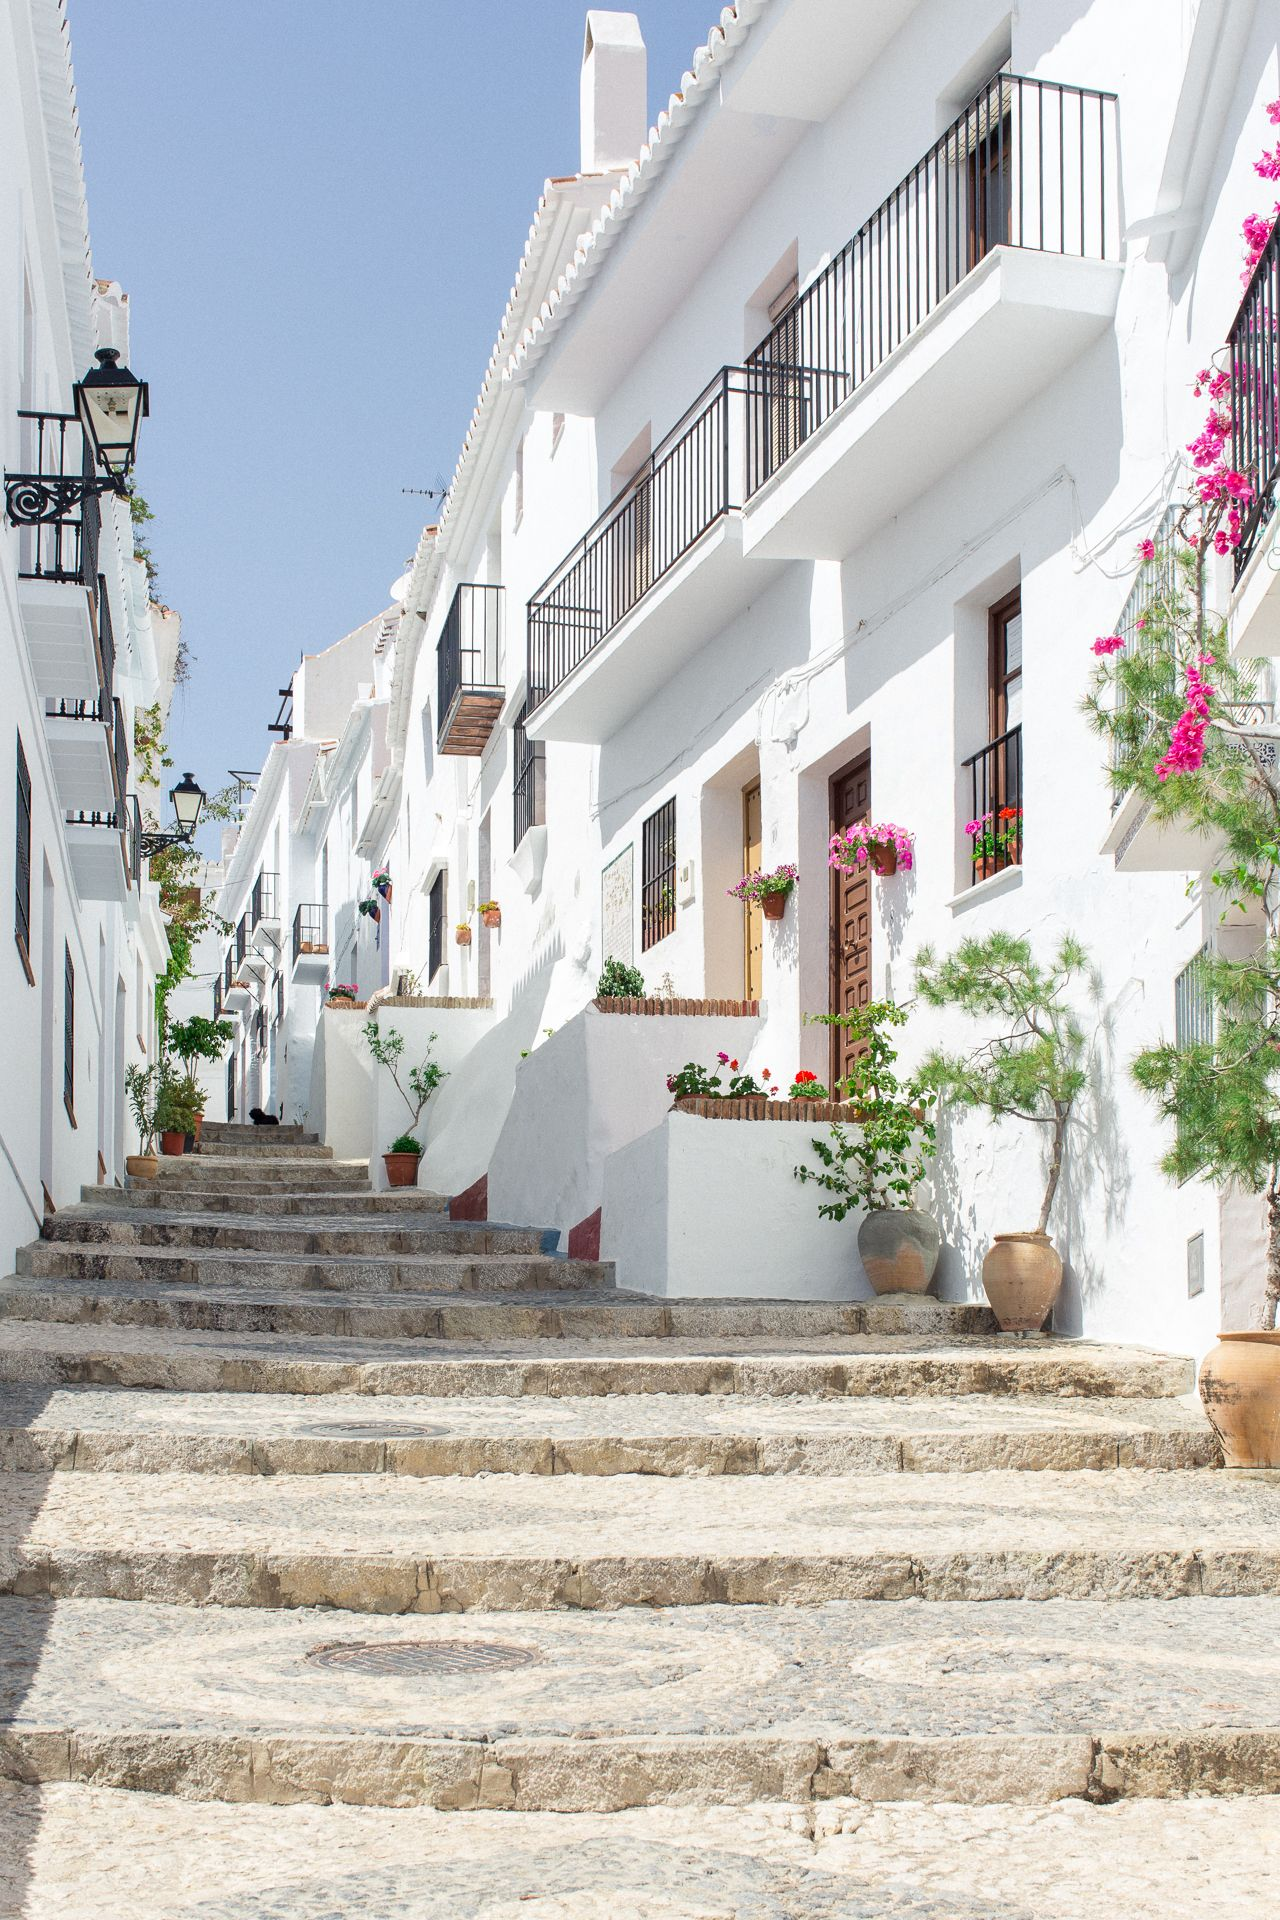 Martinlux Frigiliana, Andalusia  Spain Martinluxtumblrcom Instagram